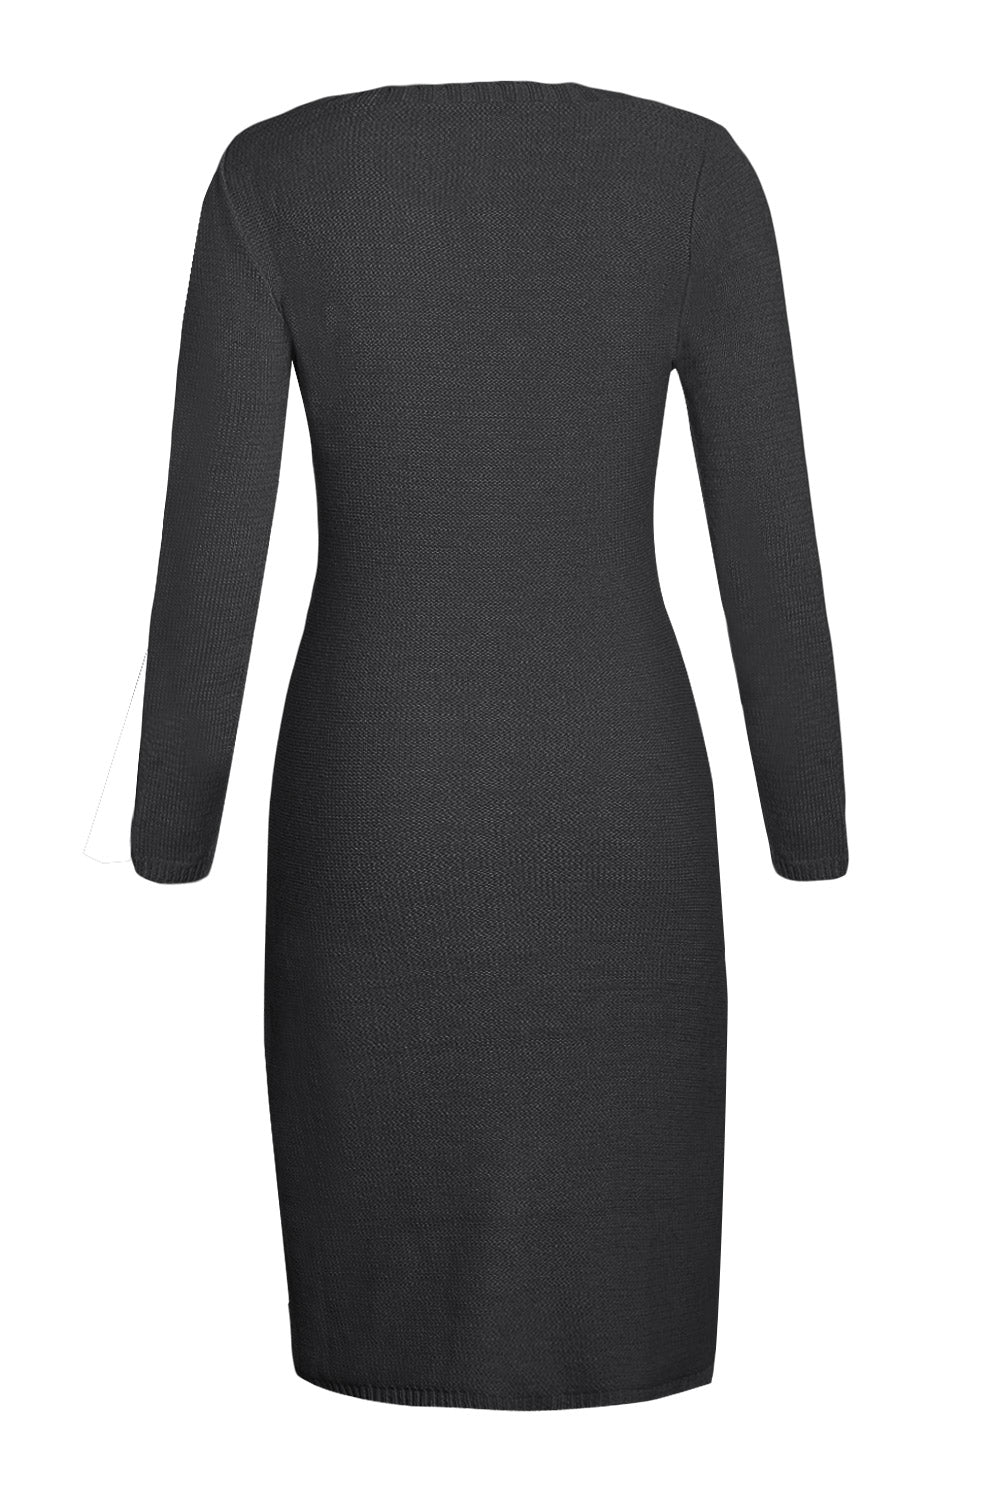 Black Women's Hand Knitted Sweater Dress